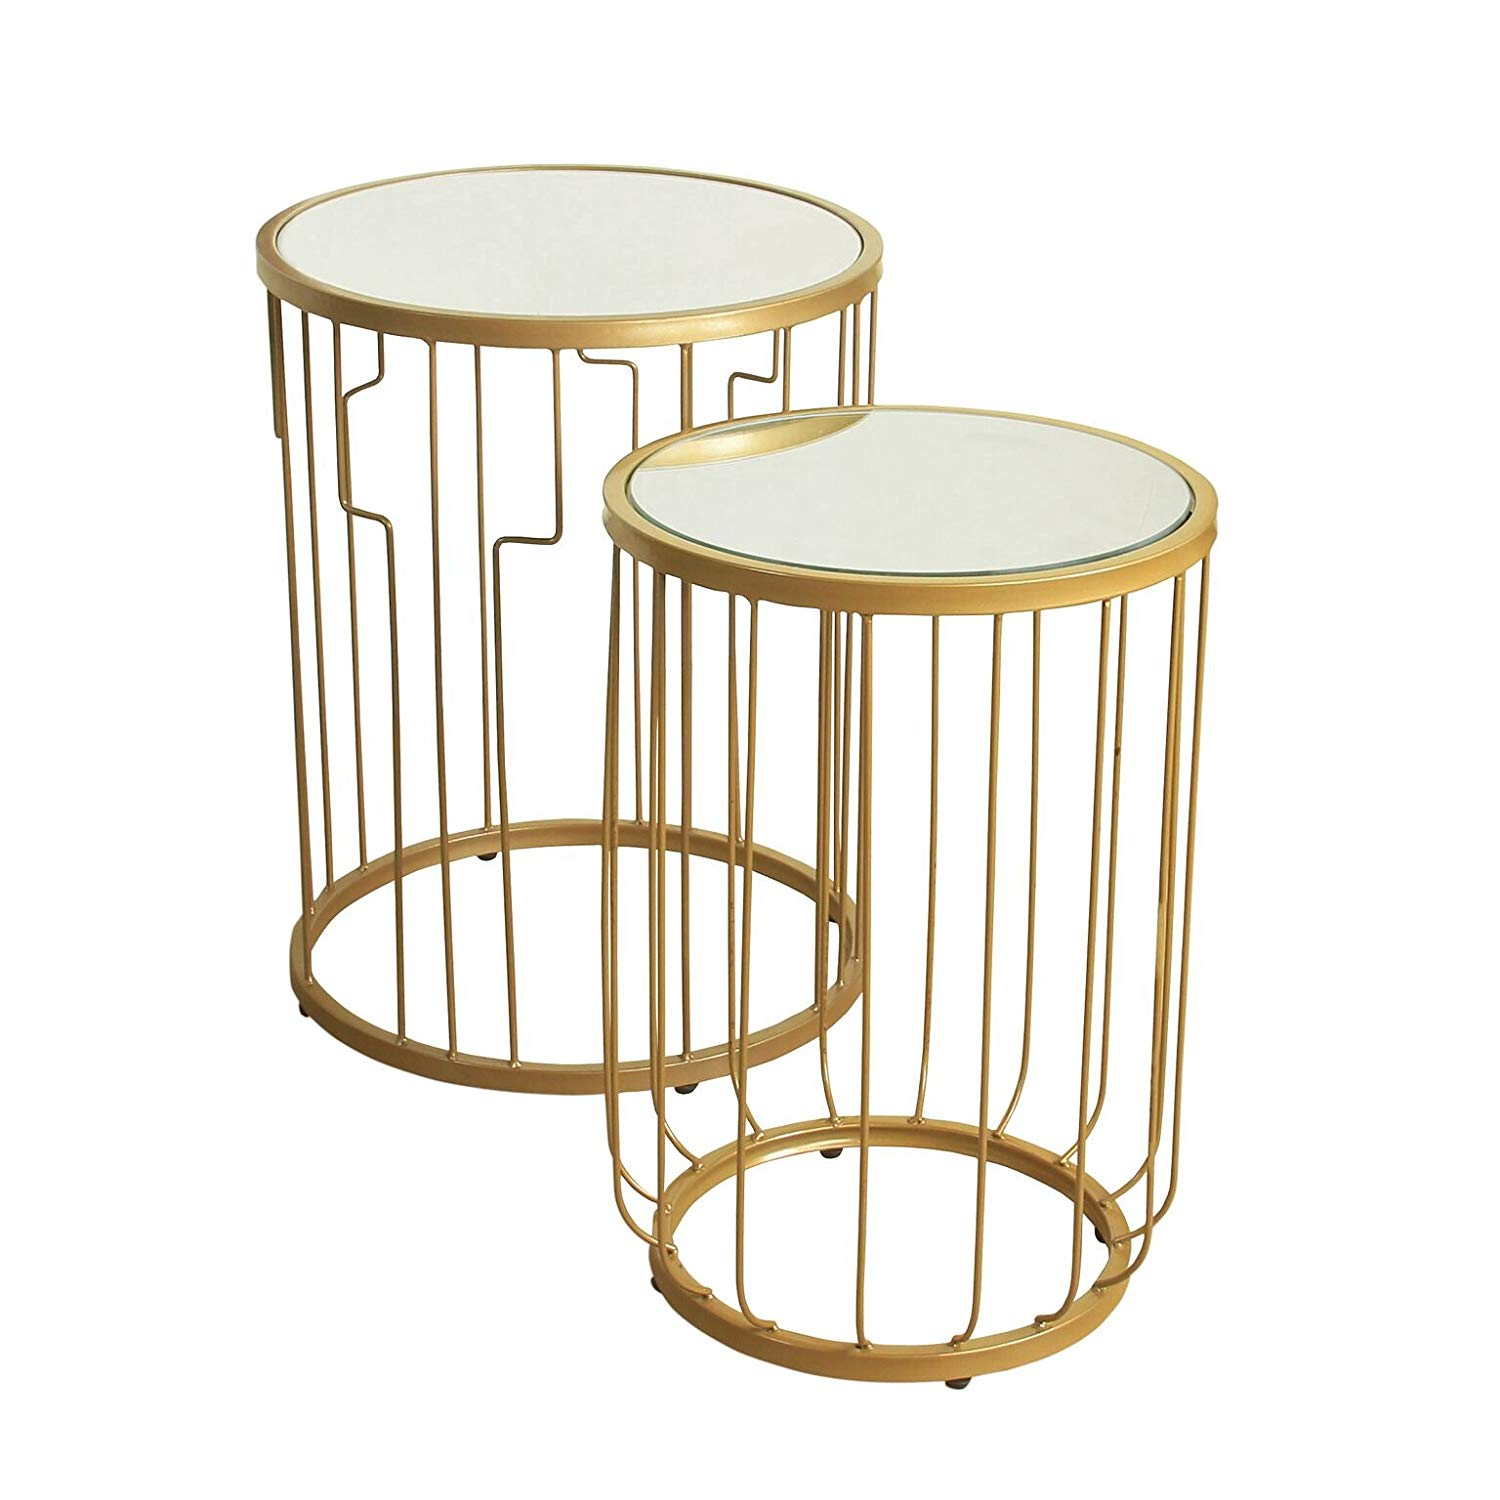 homepop metal accent nesting tables with glass sylvia table top set gold kitchen dining patio coffee white cloth pulaski furniture convertible sofa ashley room martha stewart